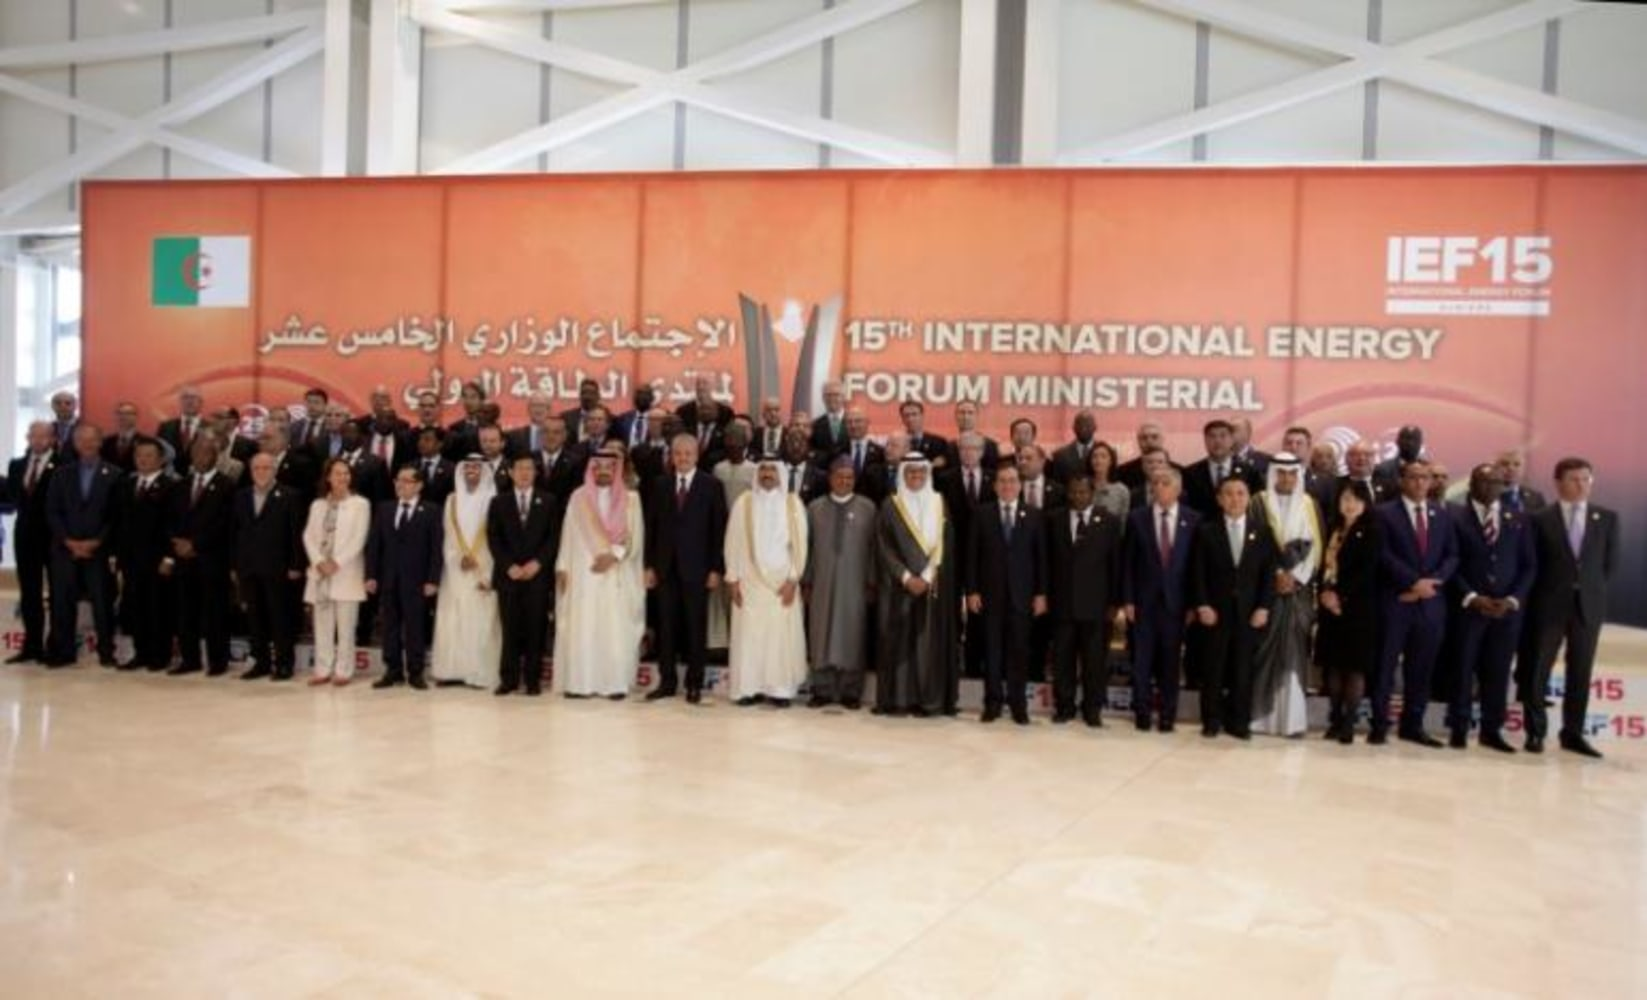 Participants pose at the 15th International Energy Forum Ministerial in Algiers